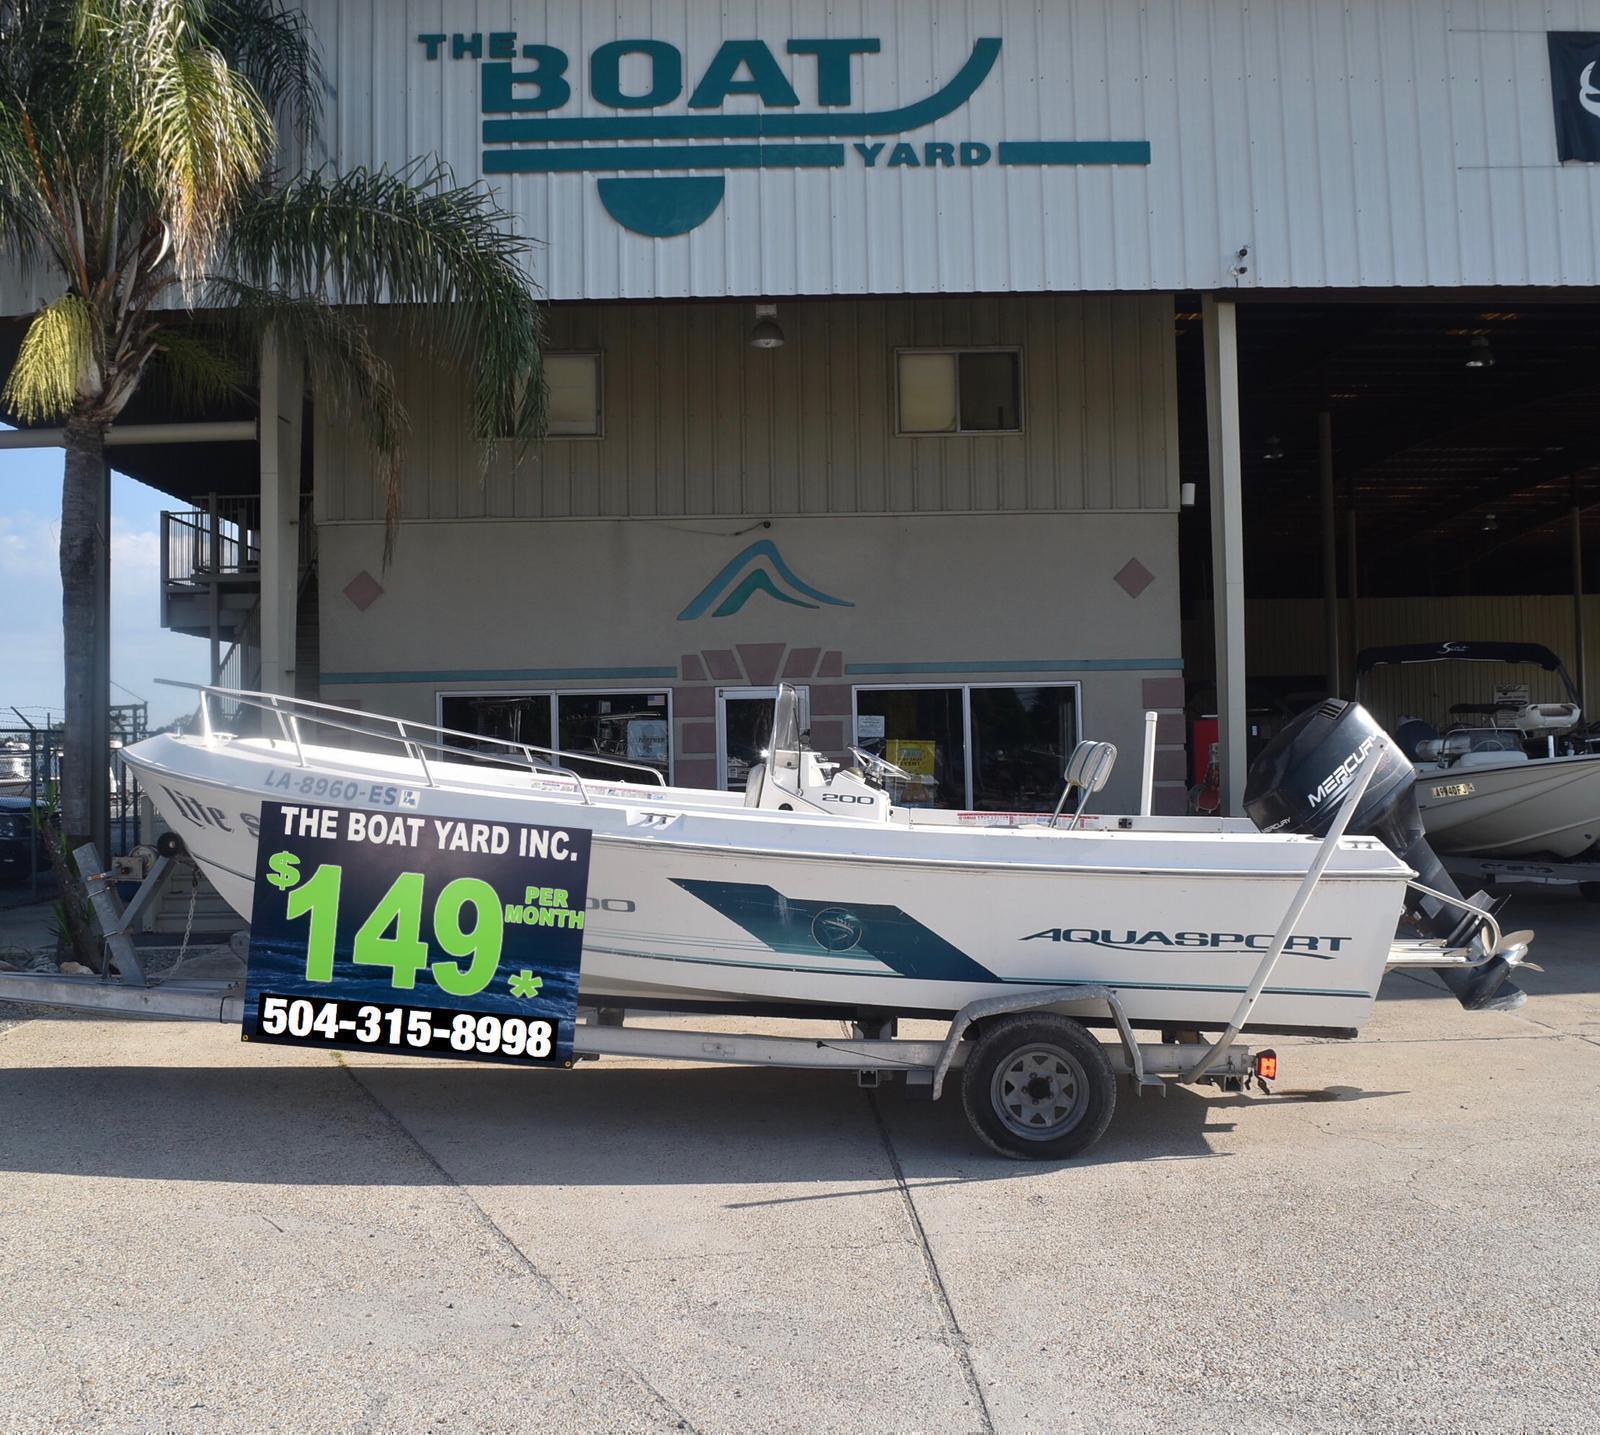 Inventory The Boat Yard Inc  Marrero, LA (504) 340-3175